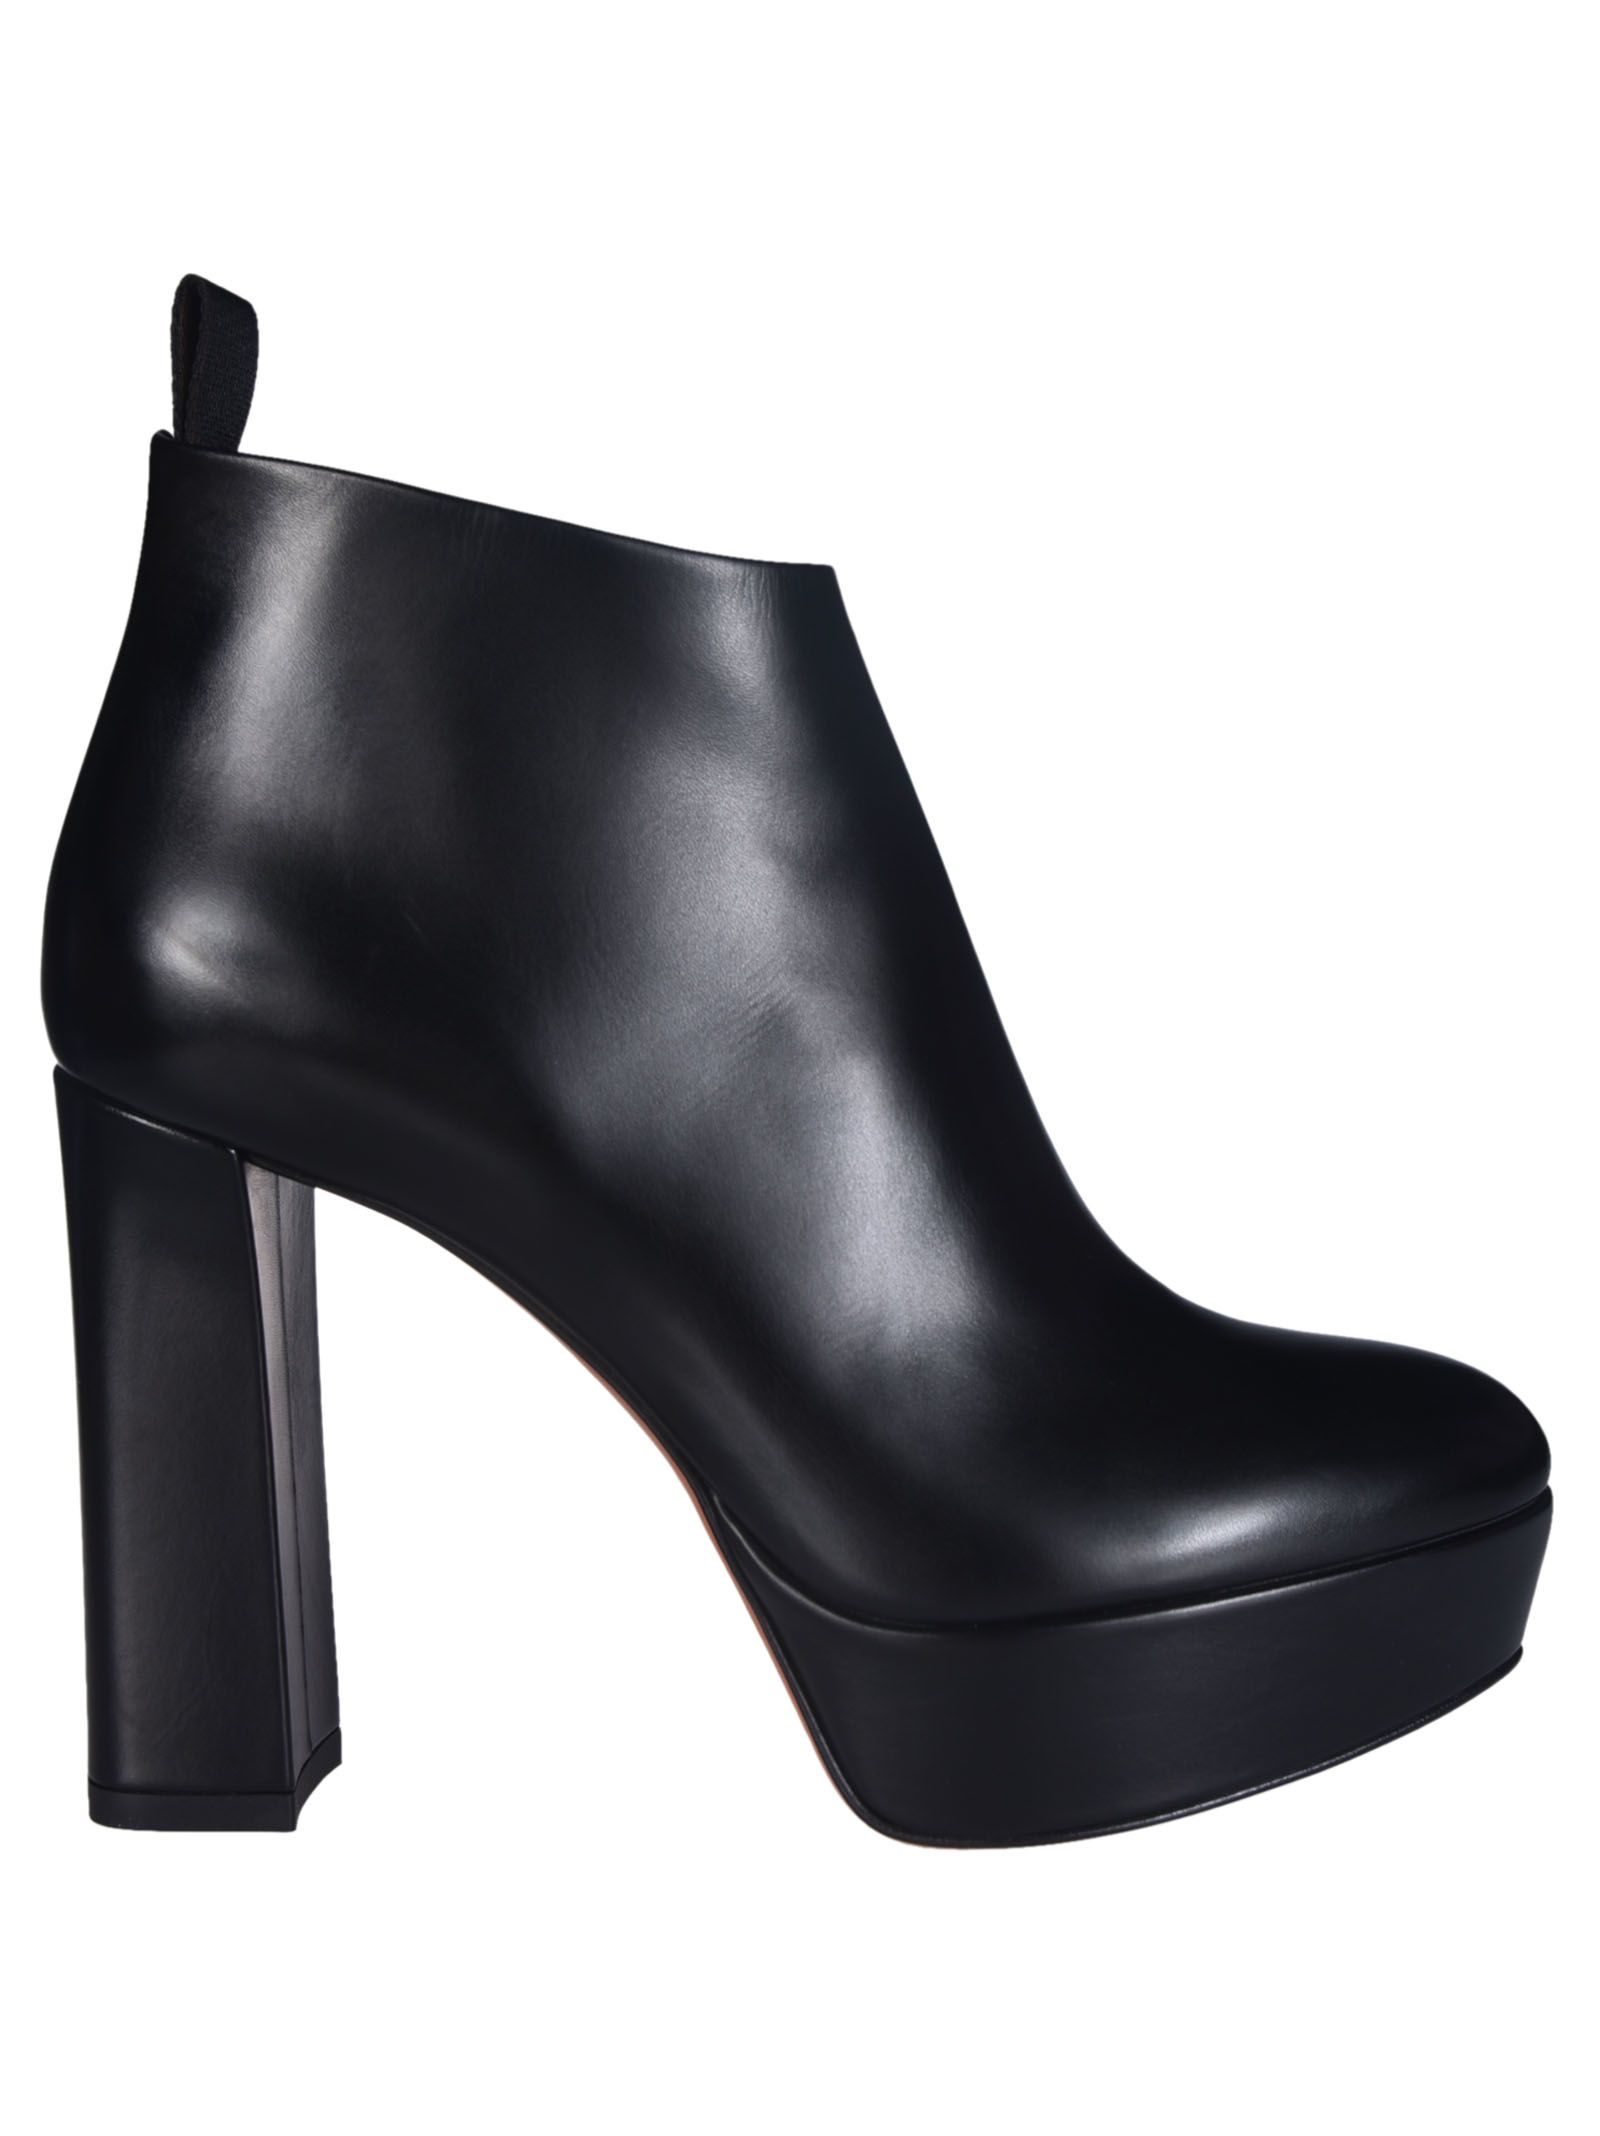 Platform Ankle Boots from Santoni: Black Platform Ankle Boots with a round toe, slip on, closed cupped heel, logo on sole.